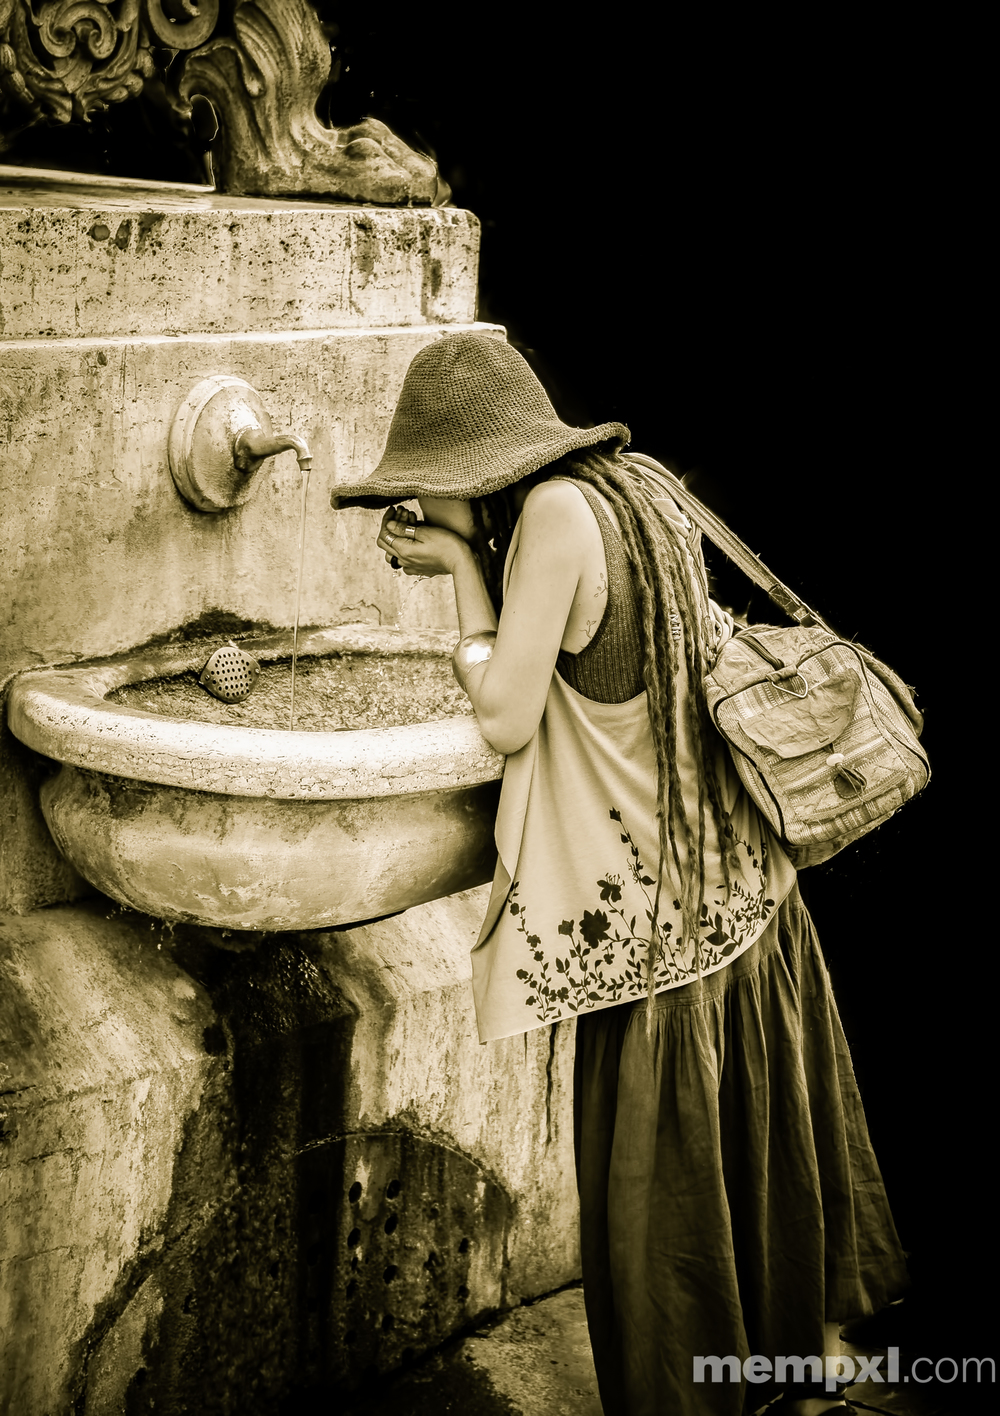 Vatican Fountain Girl 2014 WM.jpg